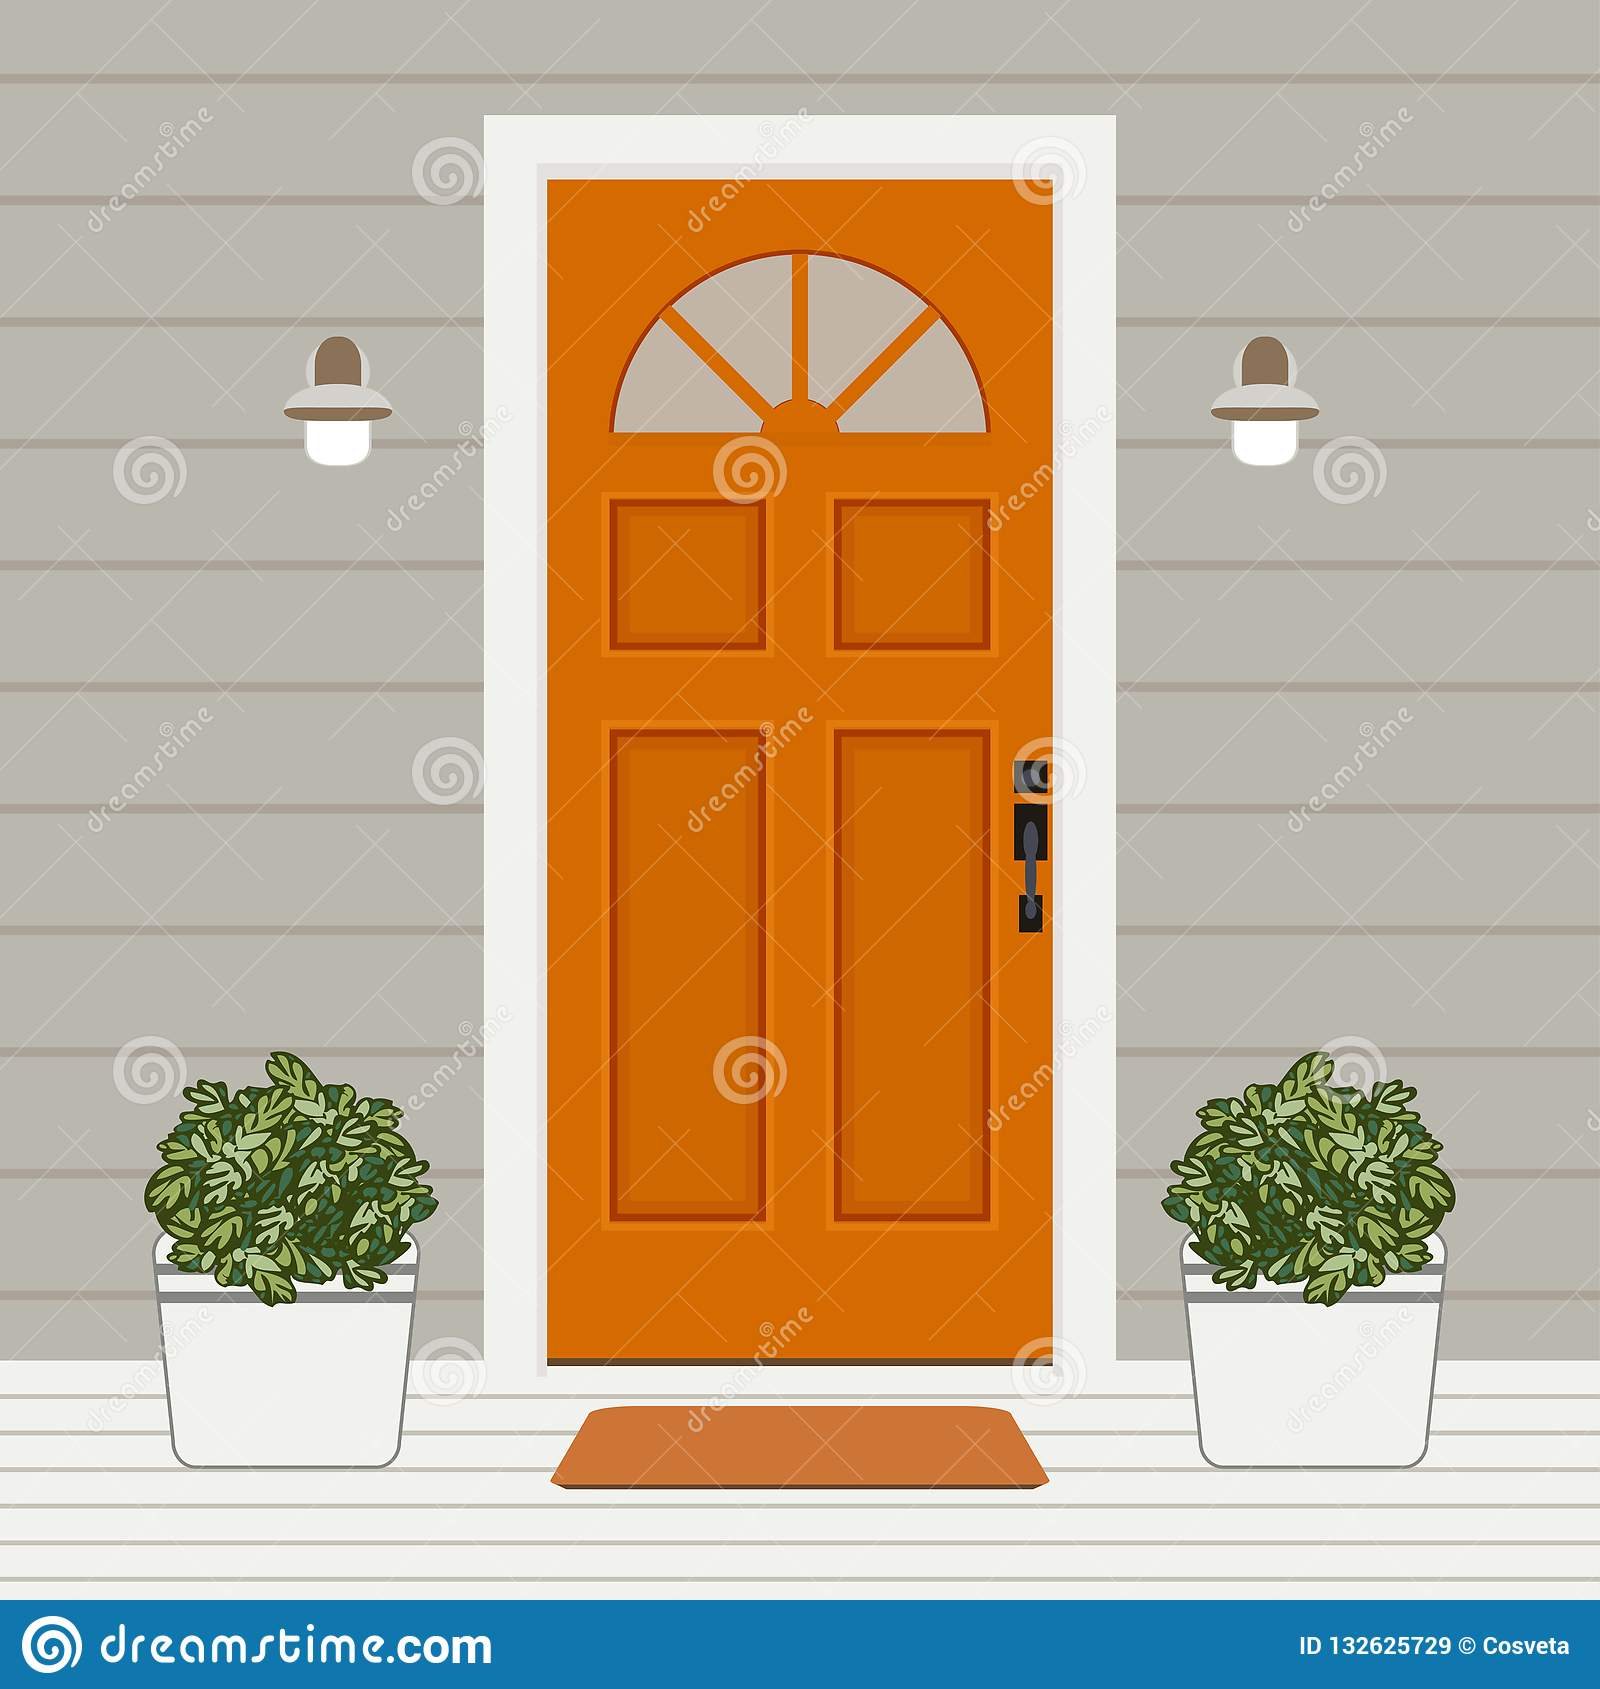 House Door Front With Window And Plants Flat Style Building Entry Facade Design Illustration Vector Stock Vector Illustration Of Building Family 132625729